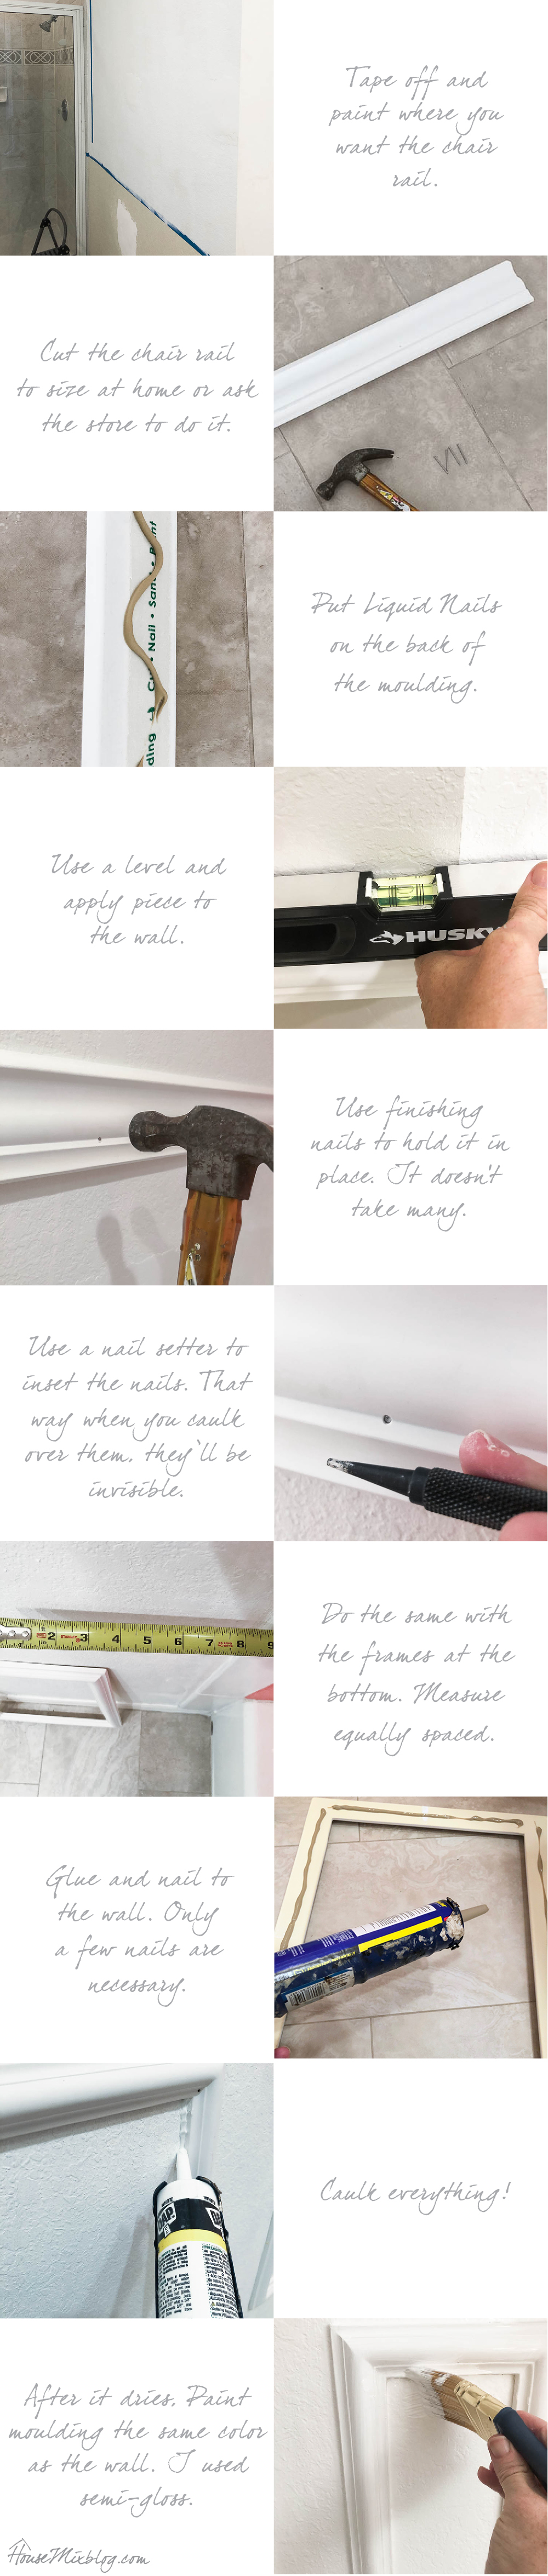 How to put up wainscoting chair rail and moulding - the easy way - DIY - tutorial